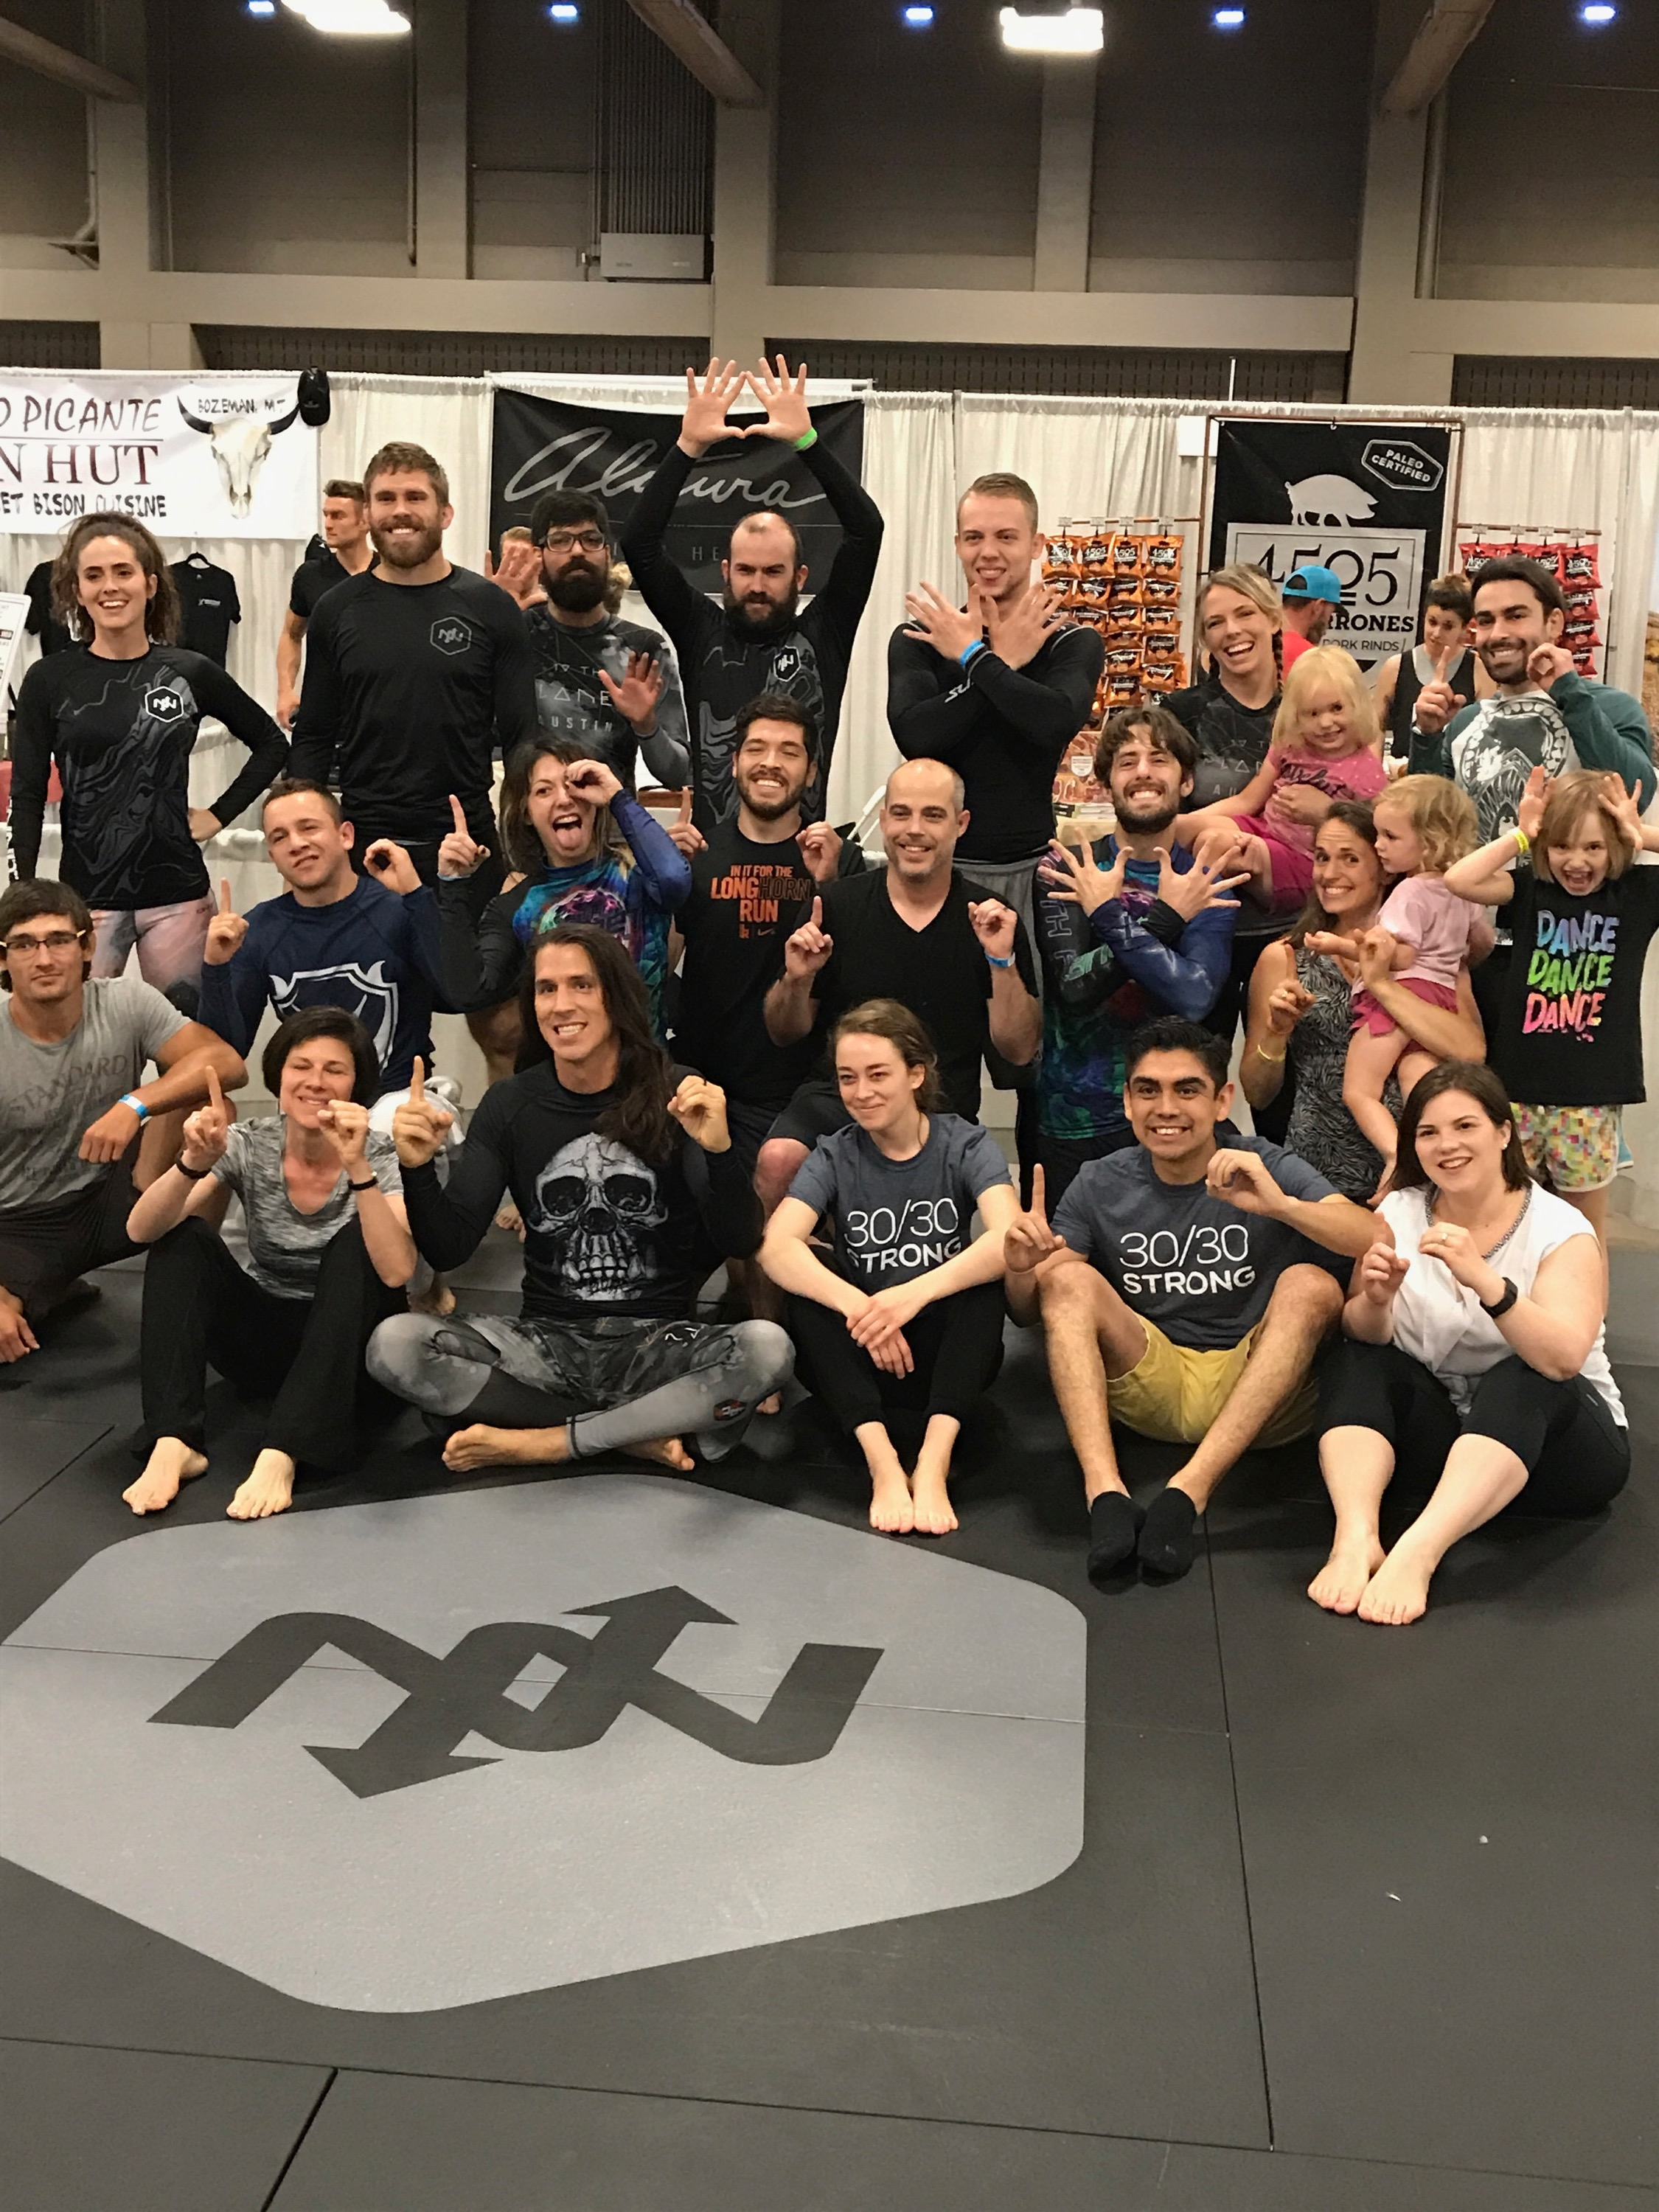 After my awesome first BJJ session!